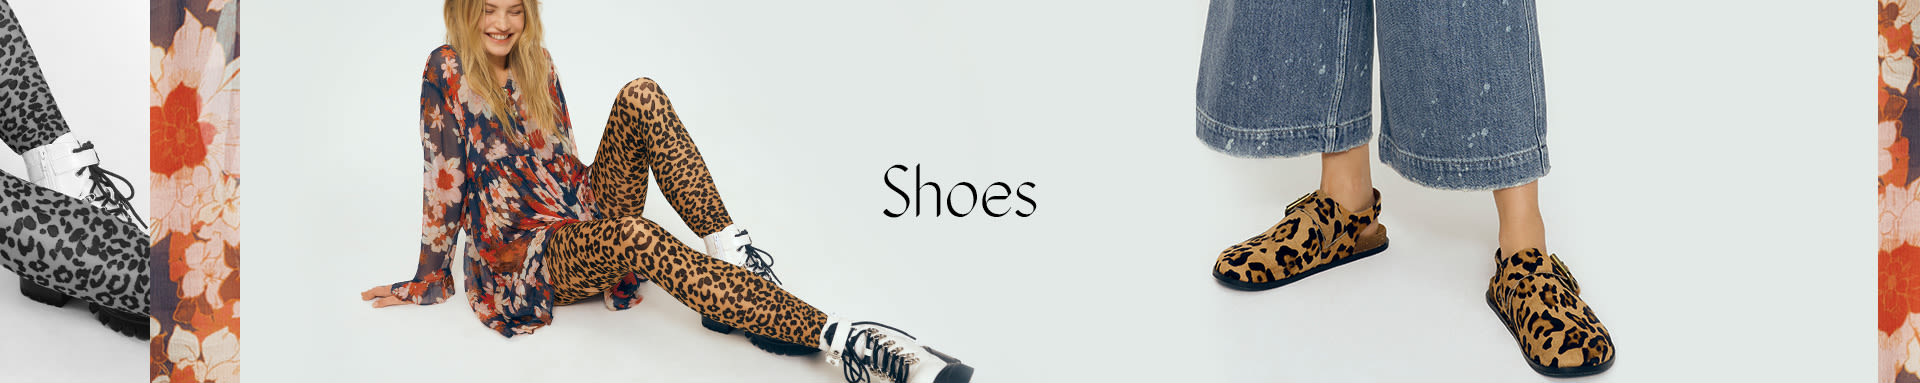 3c8c48d08 Women's Shoes: Summer Shoes, Fall Shoes & More | Free People